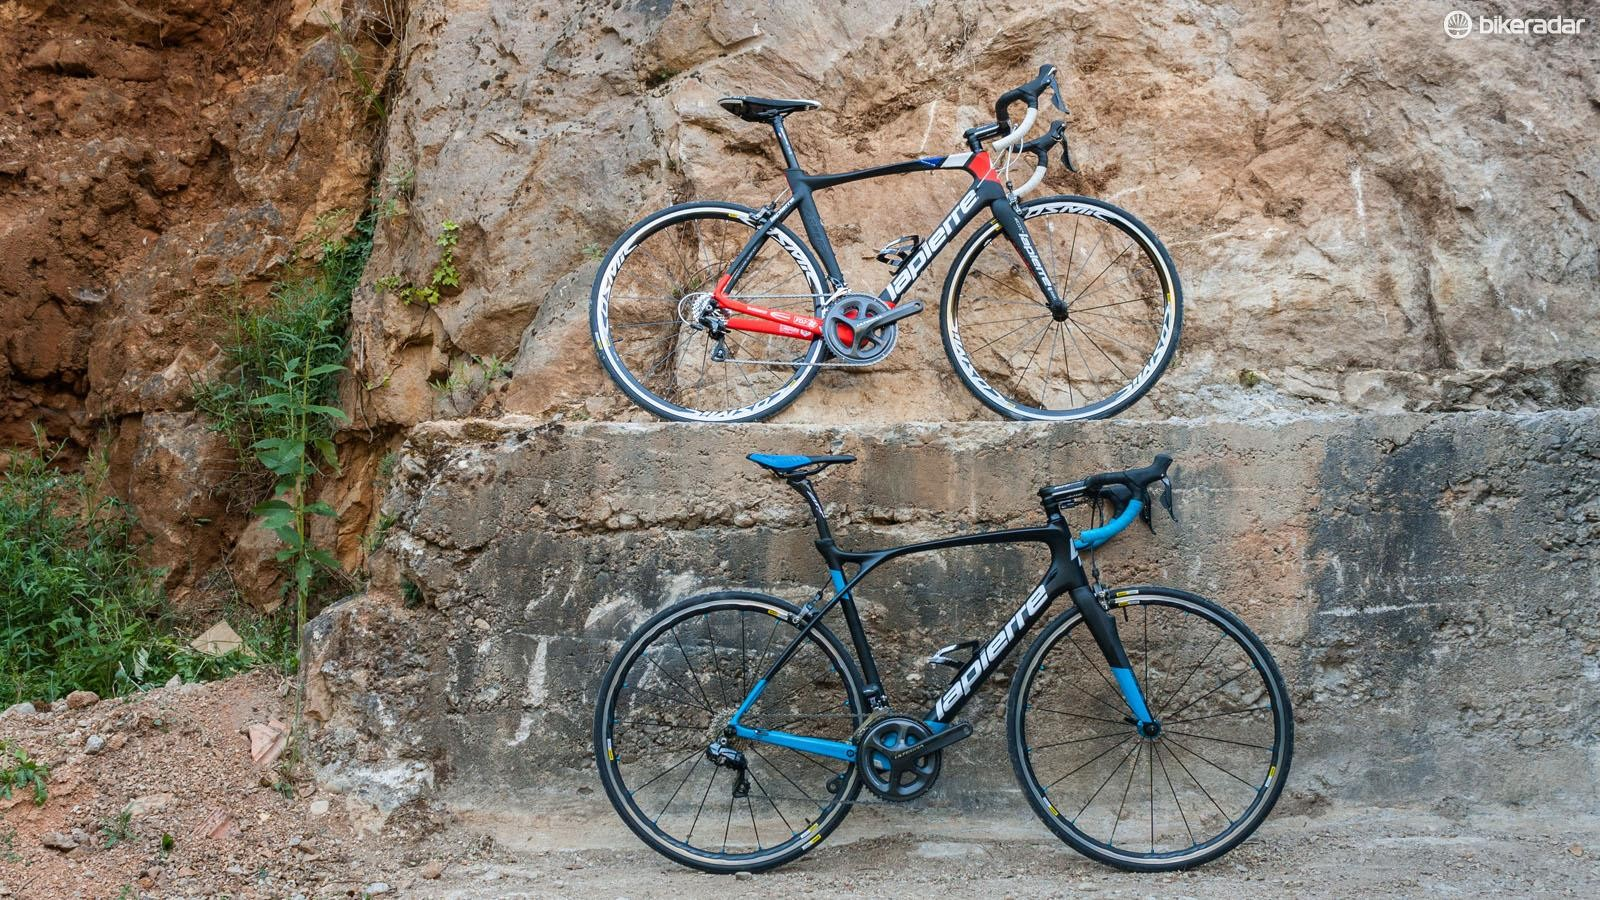 The Lapierre Aircode SL 600 (top) and Xelius SL700 (bottom)